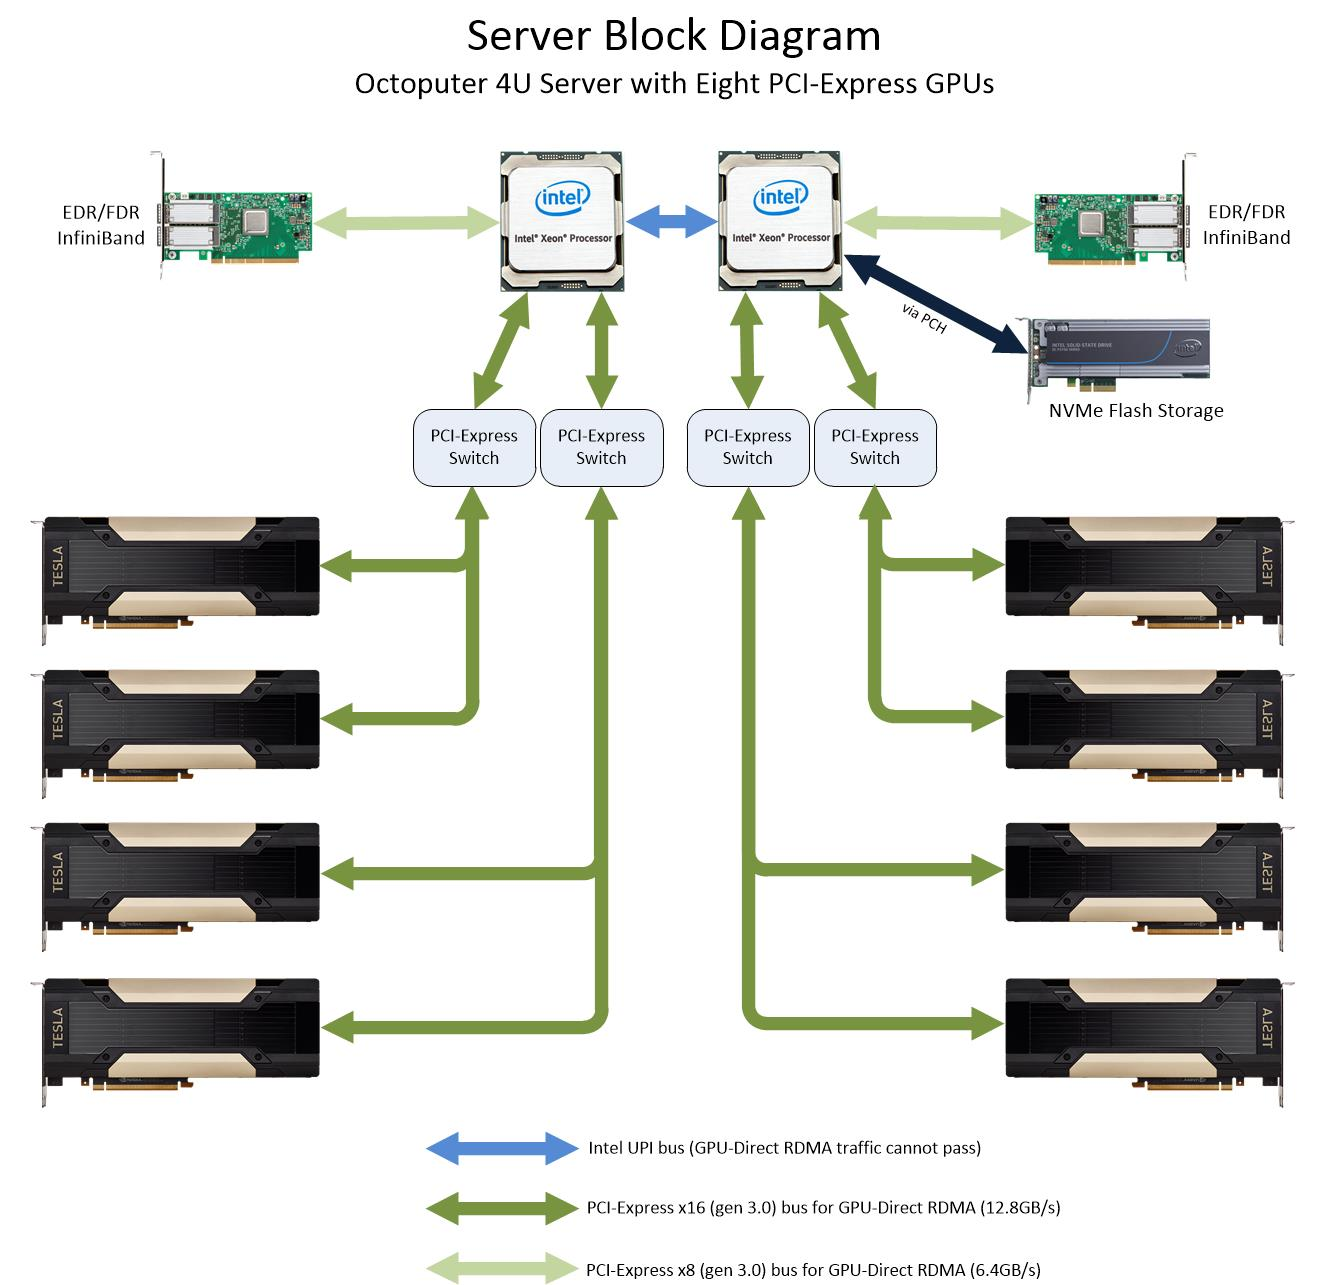 Octoputer 8 Gpu With Dual Root Complex Diagram Microway The Tesla Switch Leave A Reply Cancel